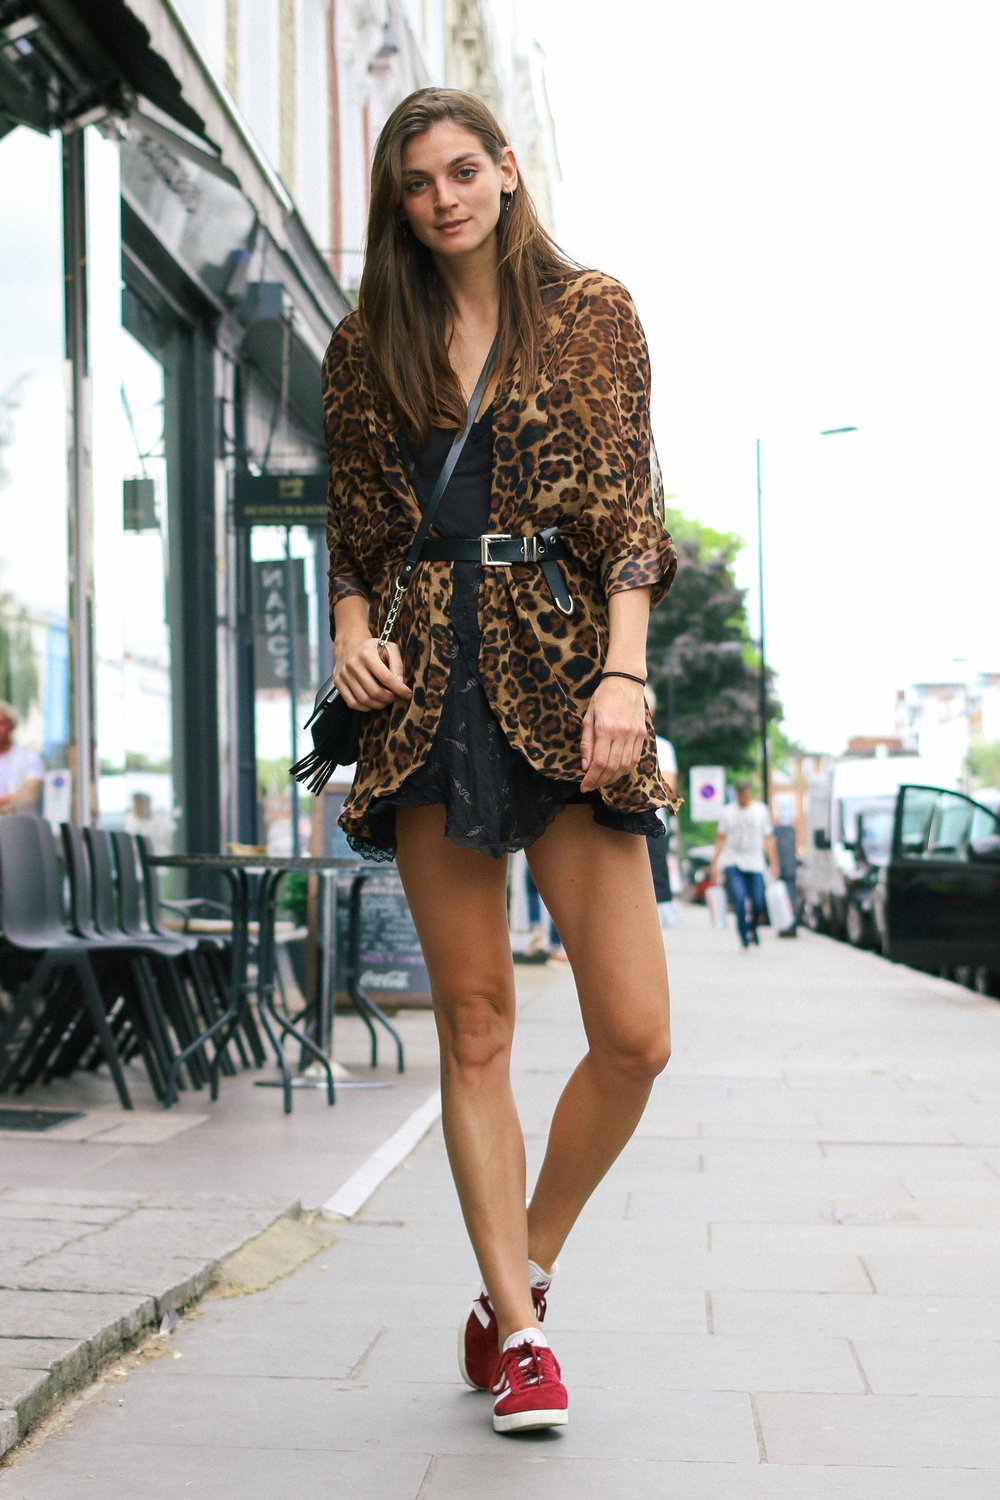 Street fashion stories_Imaginealady_alexa_corlett